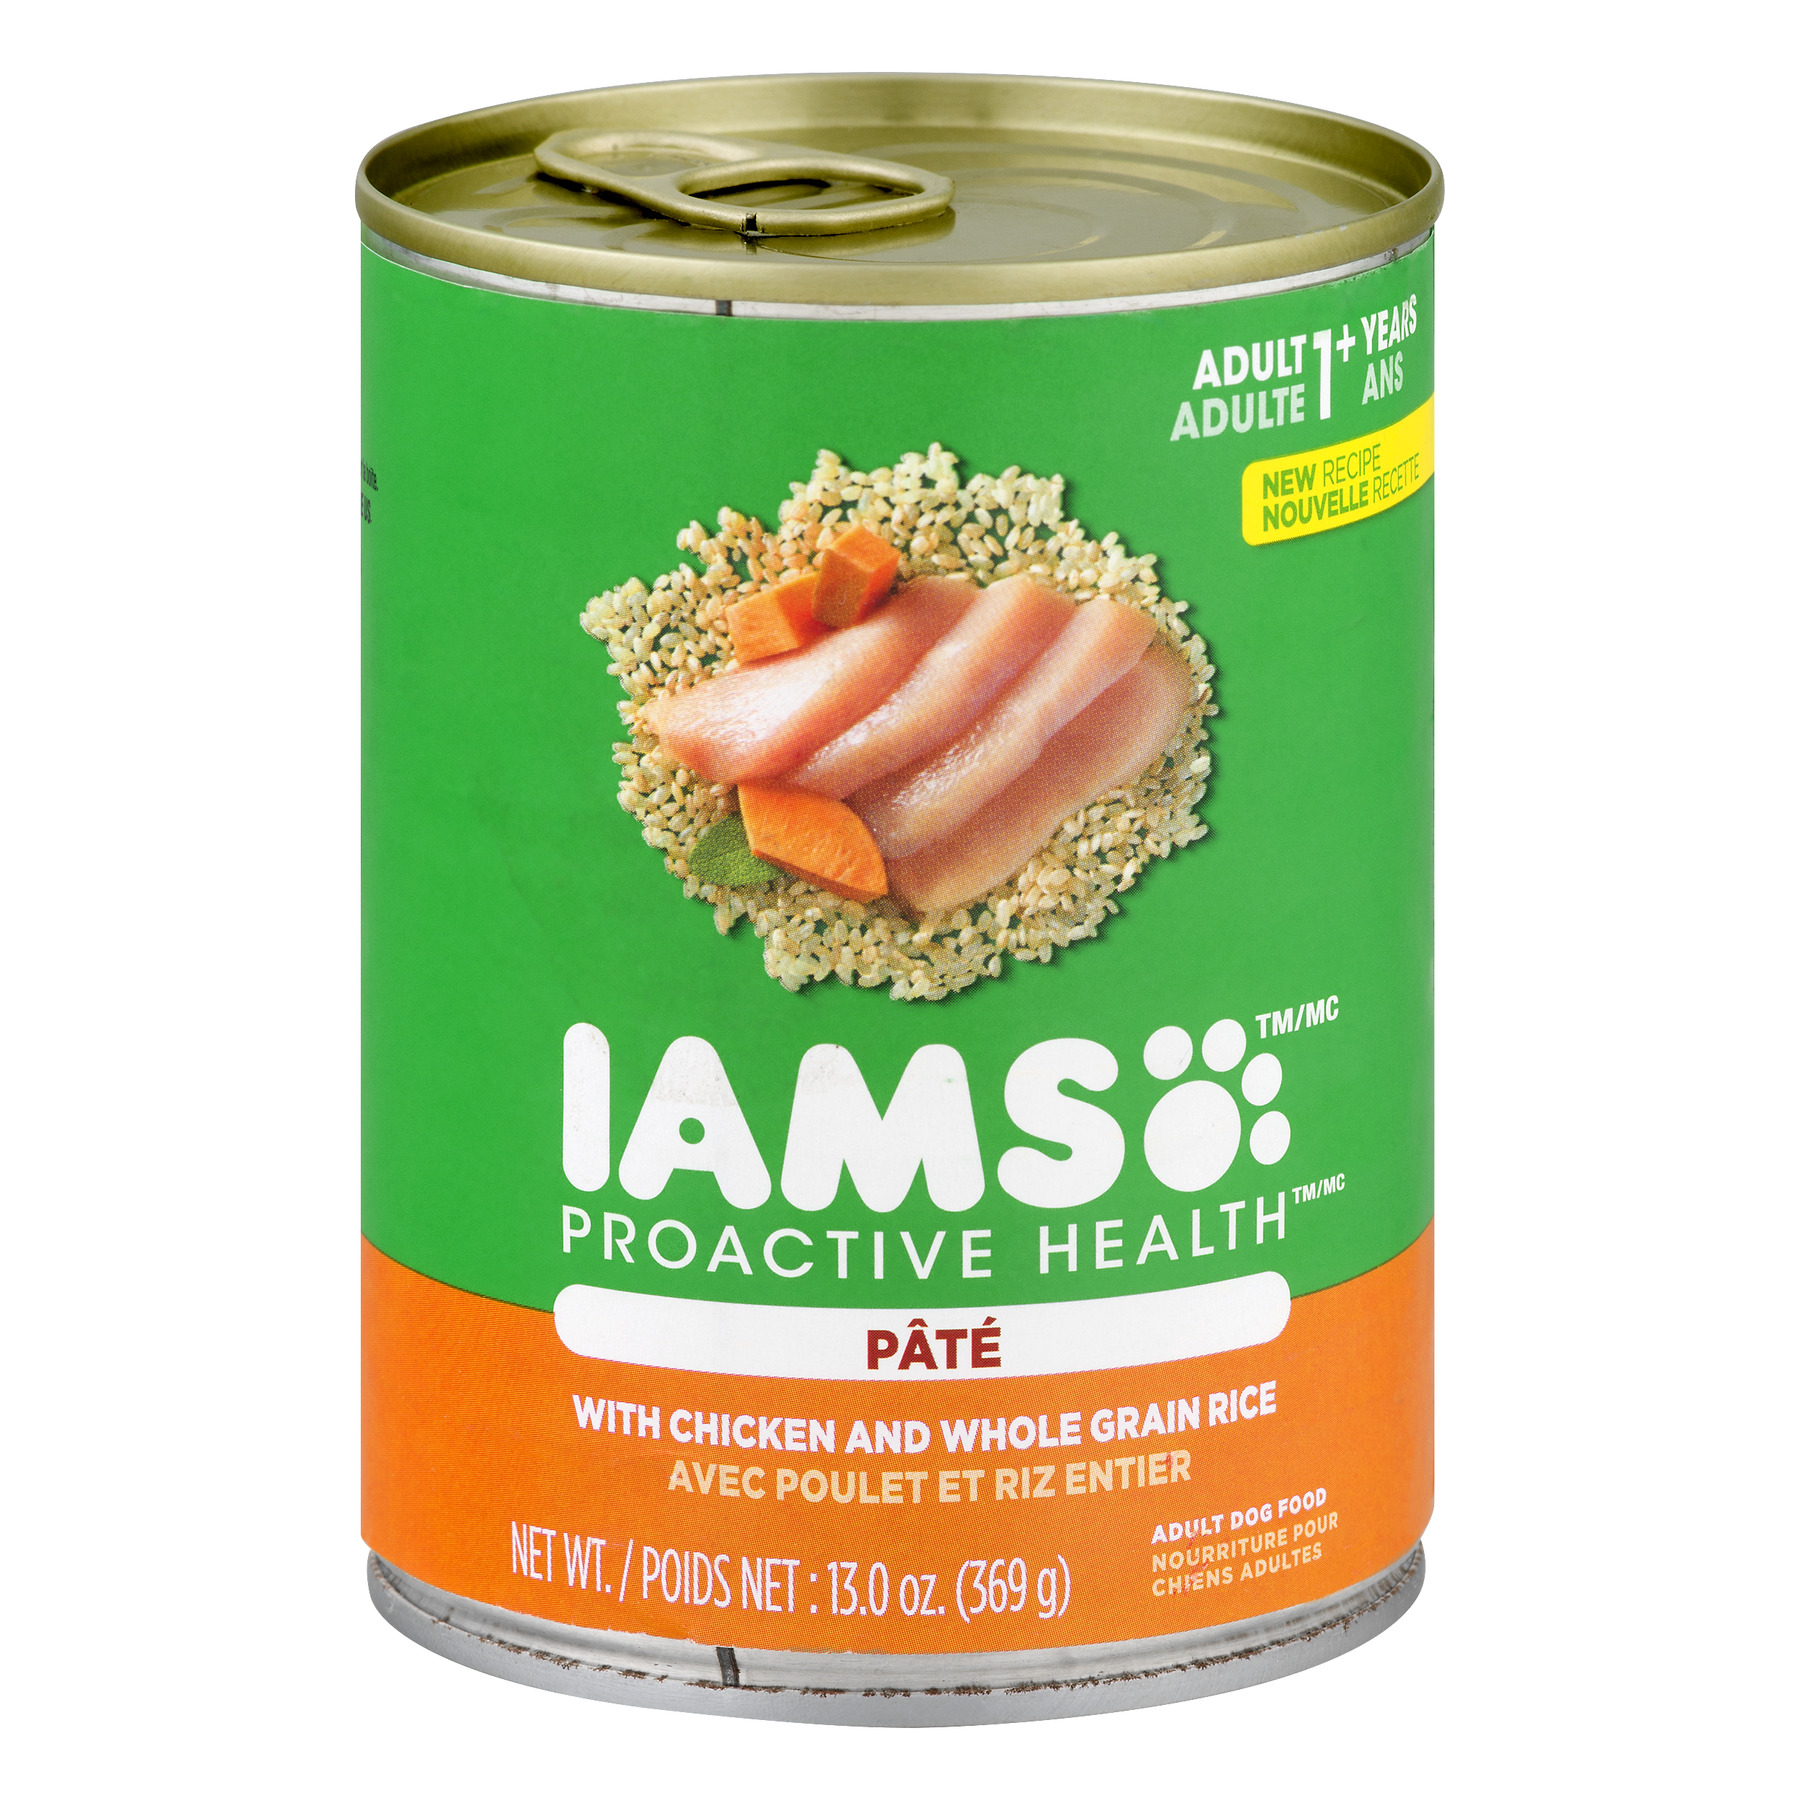 IAMS PROACTIVE HEALTH Adult With Chicken and Whole Grain Rice Pate Wet